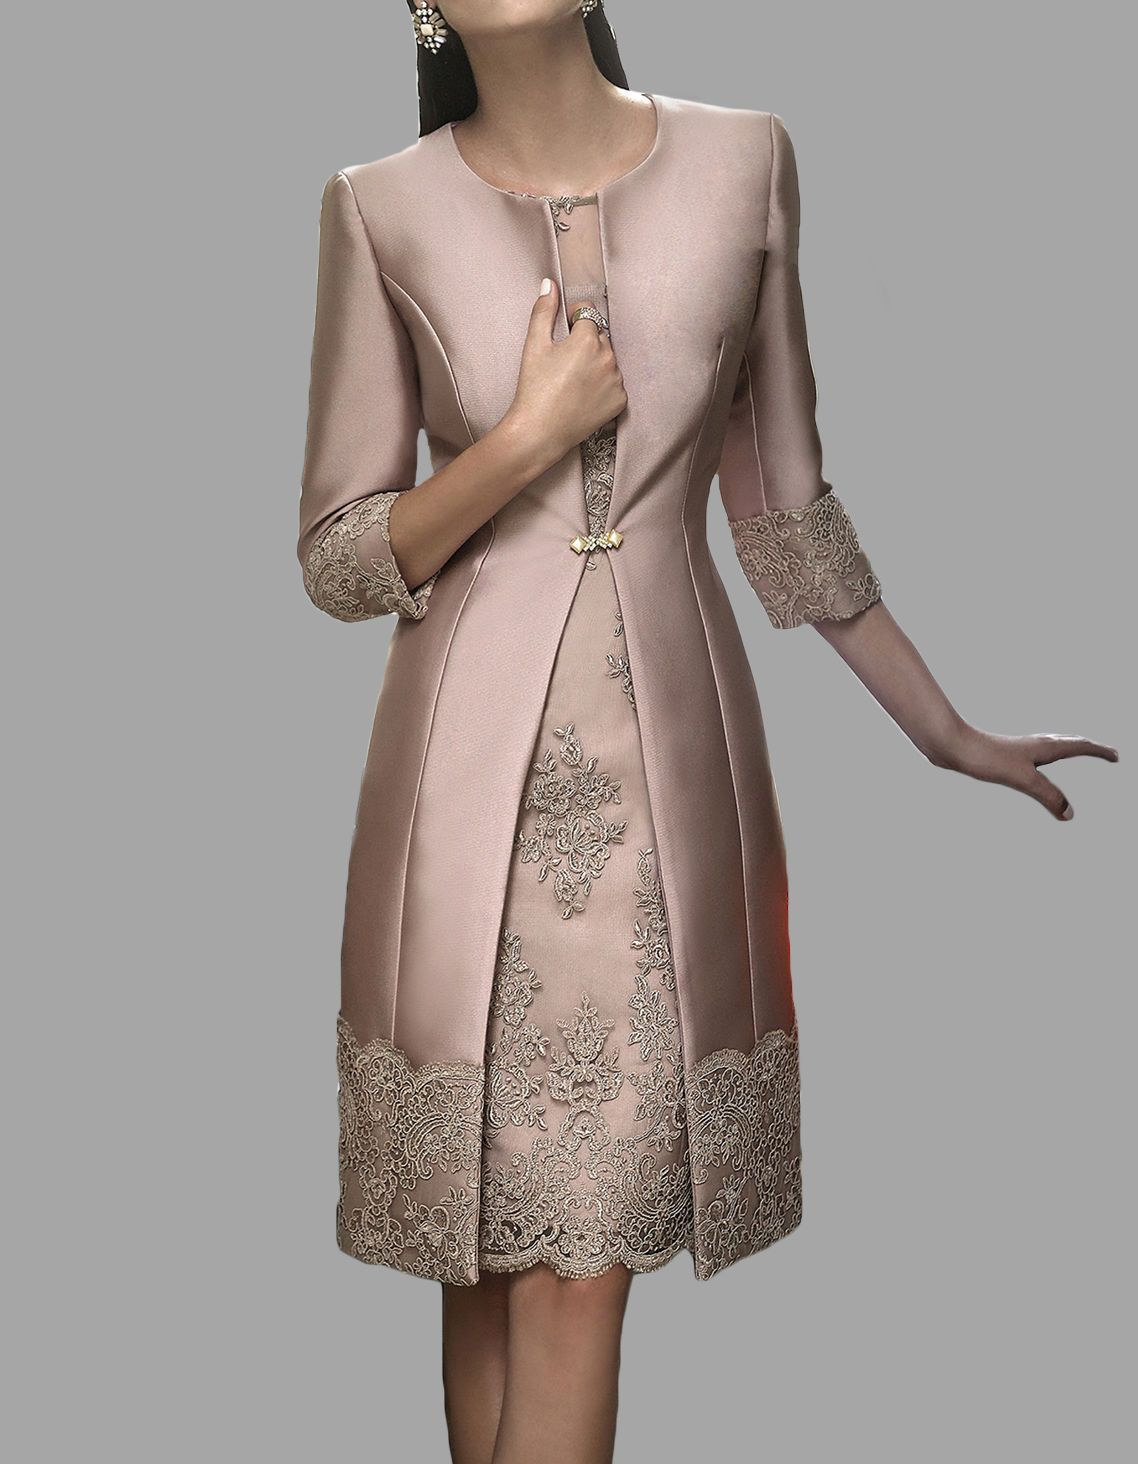 30243745bed New Knee Length Mother Of The Bride Dress With Coat Satin Appliques 3 4  sleeves